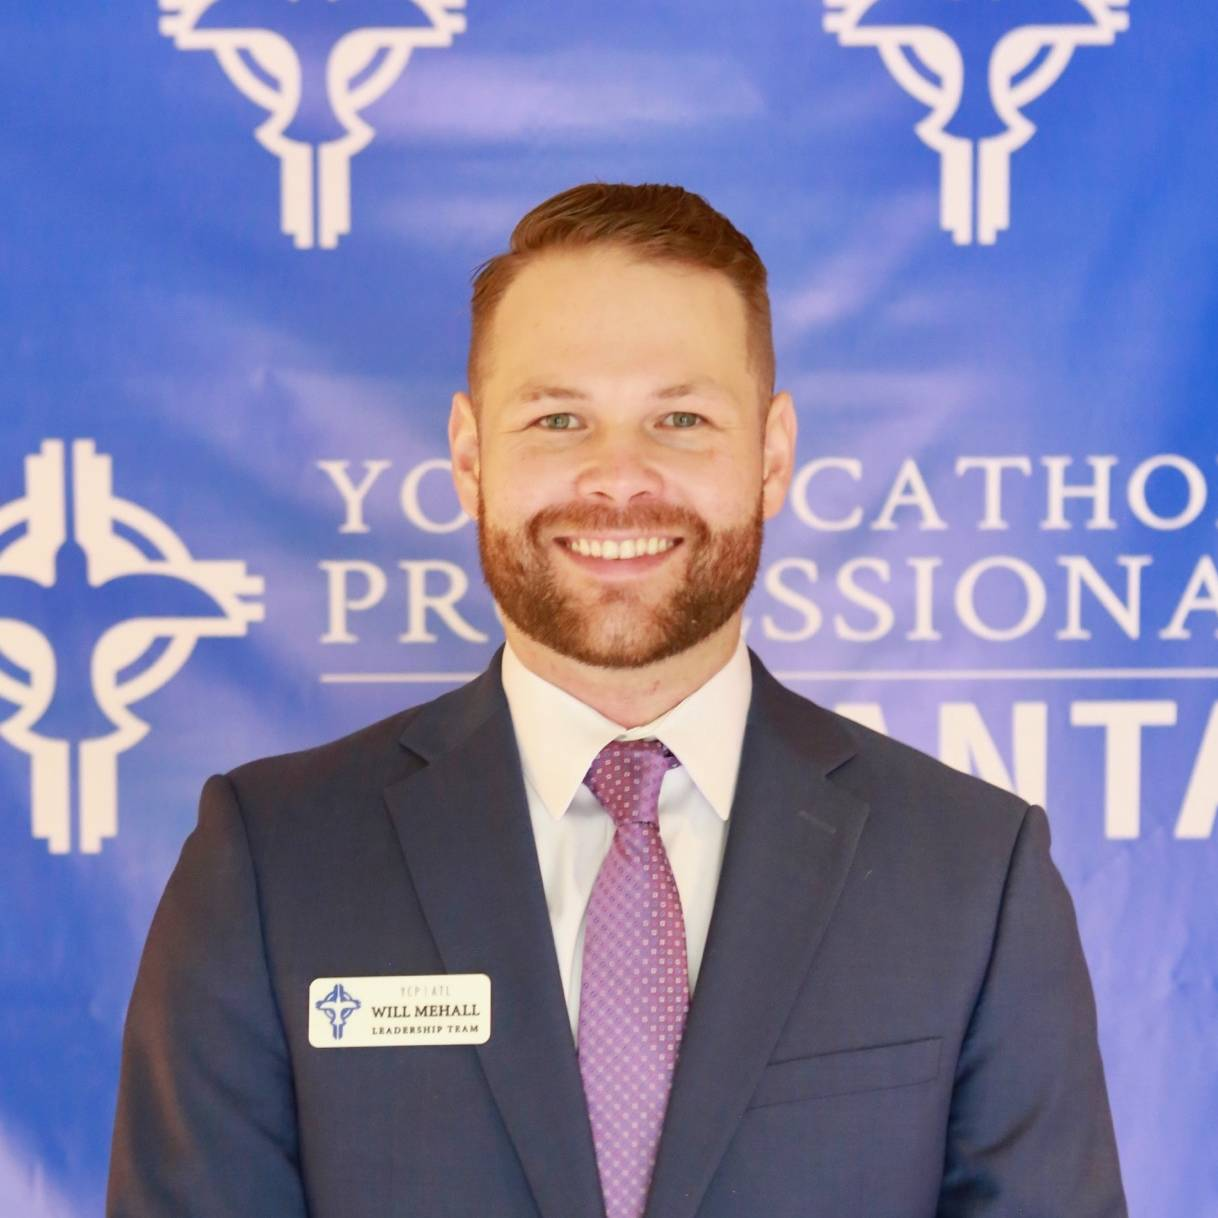 Will Mehall - VP & Director of Operations